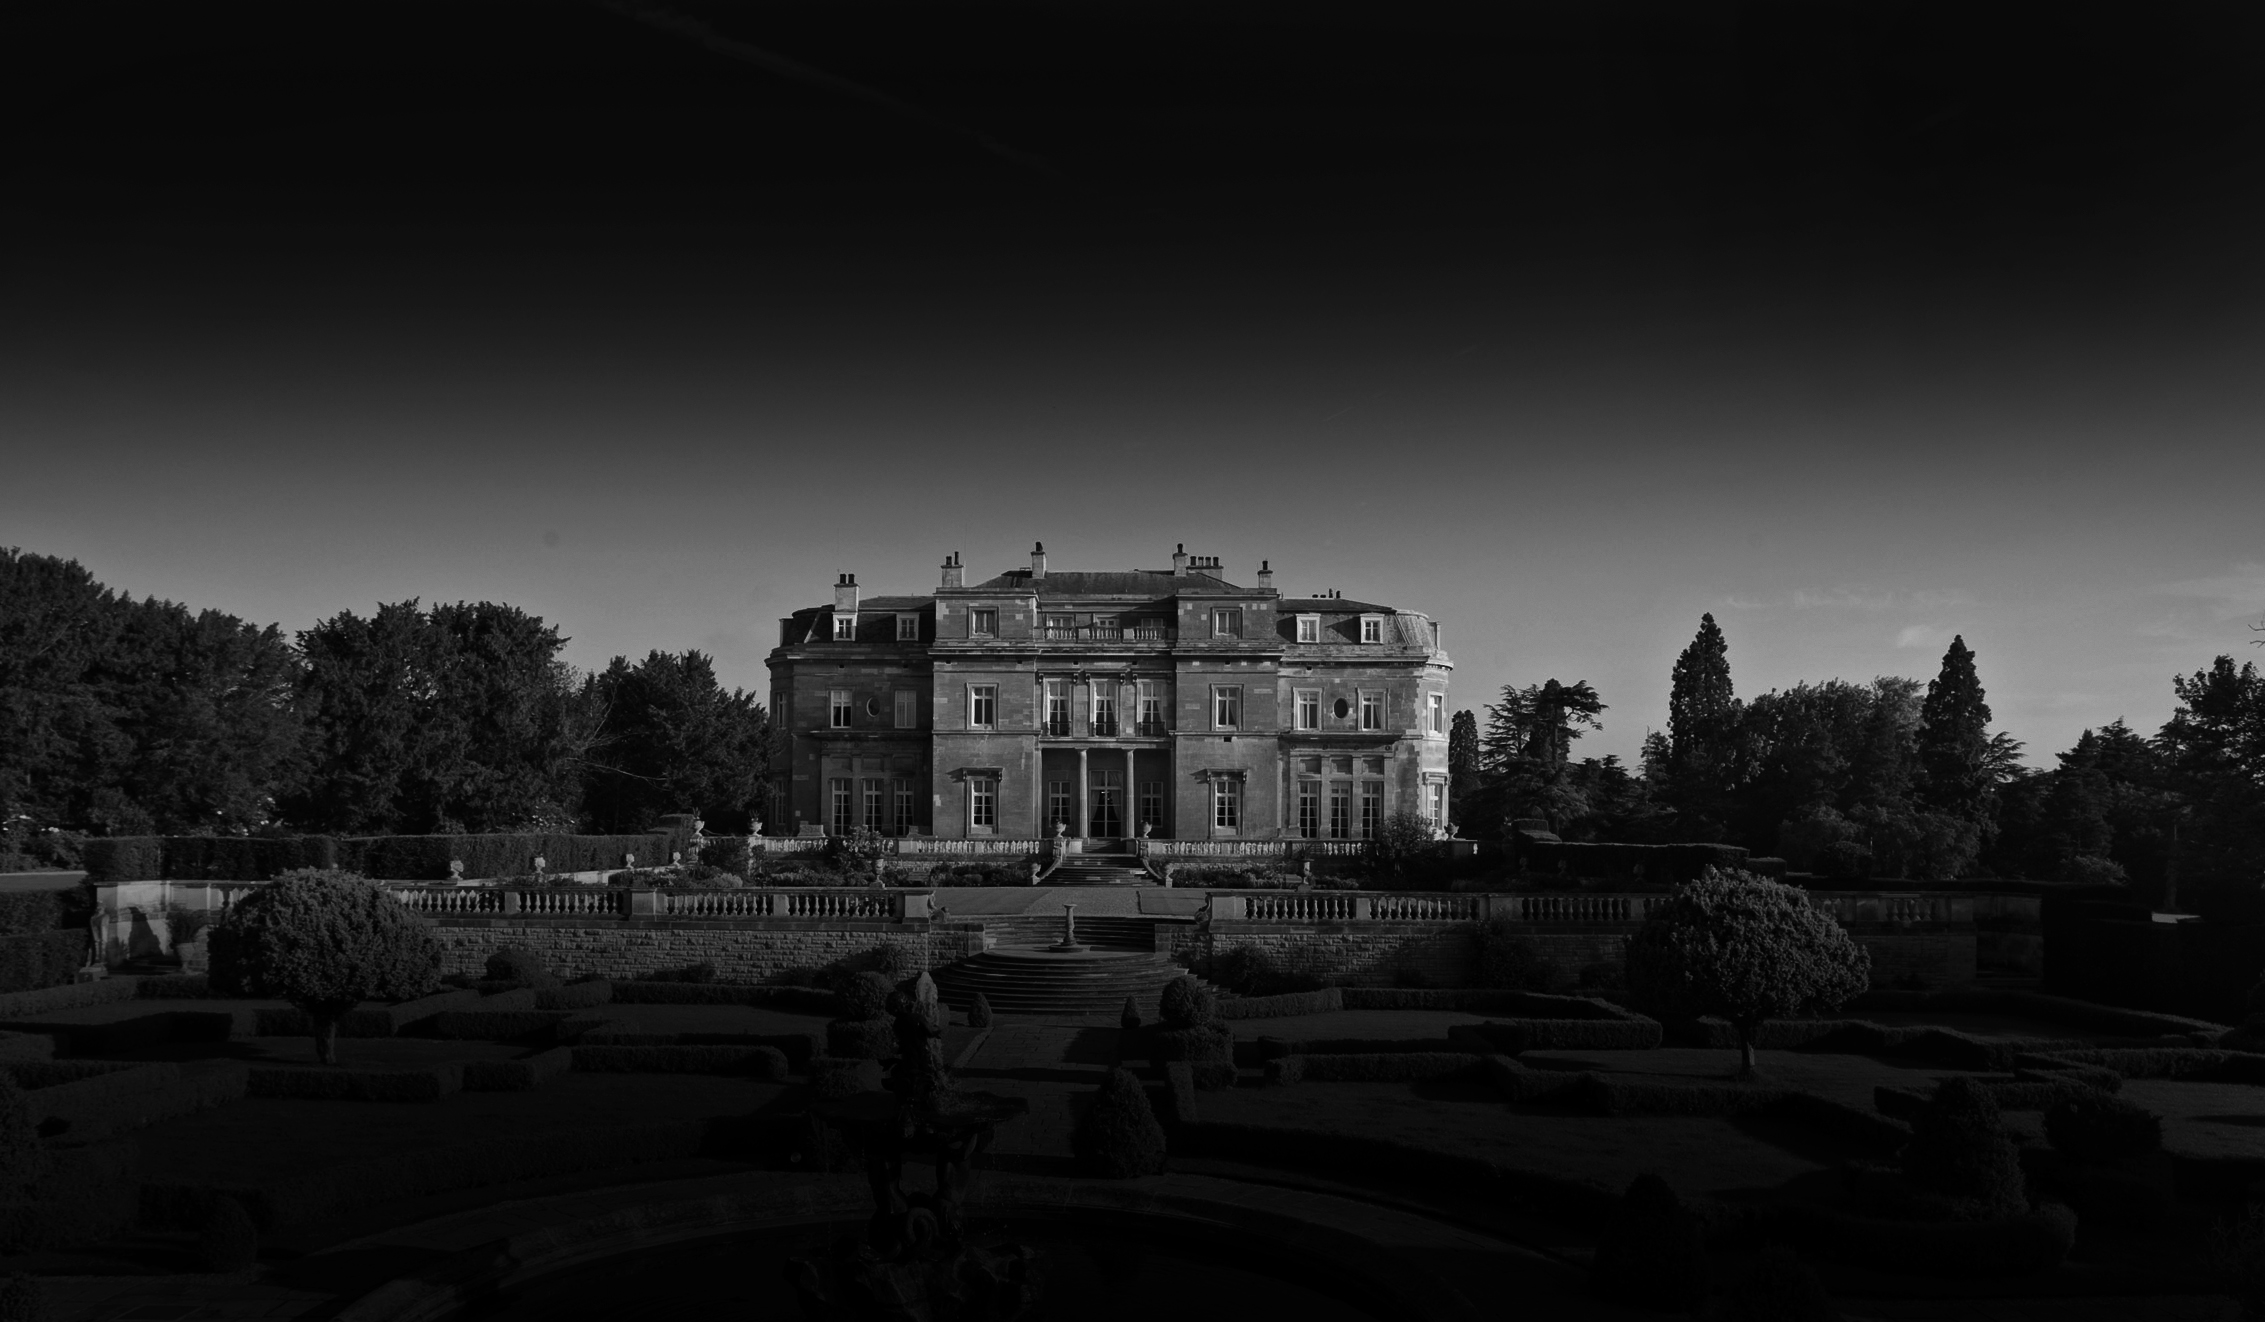 Luton-hoo-events